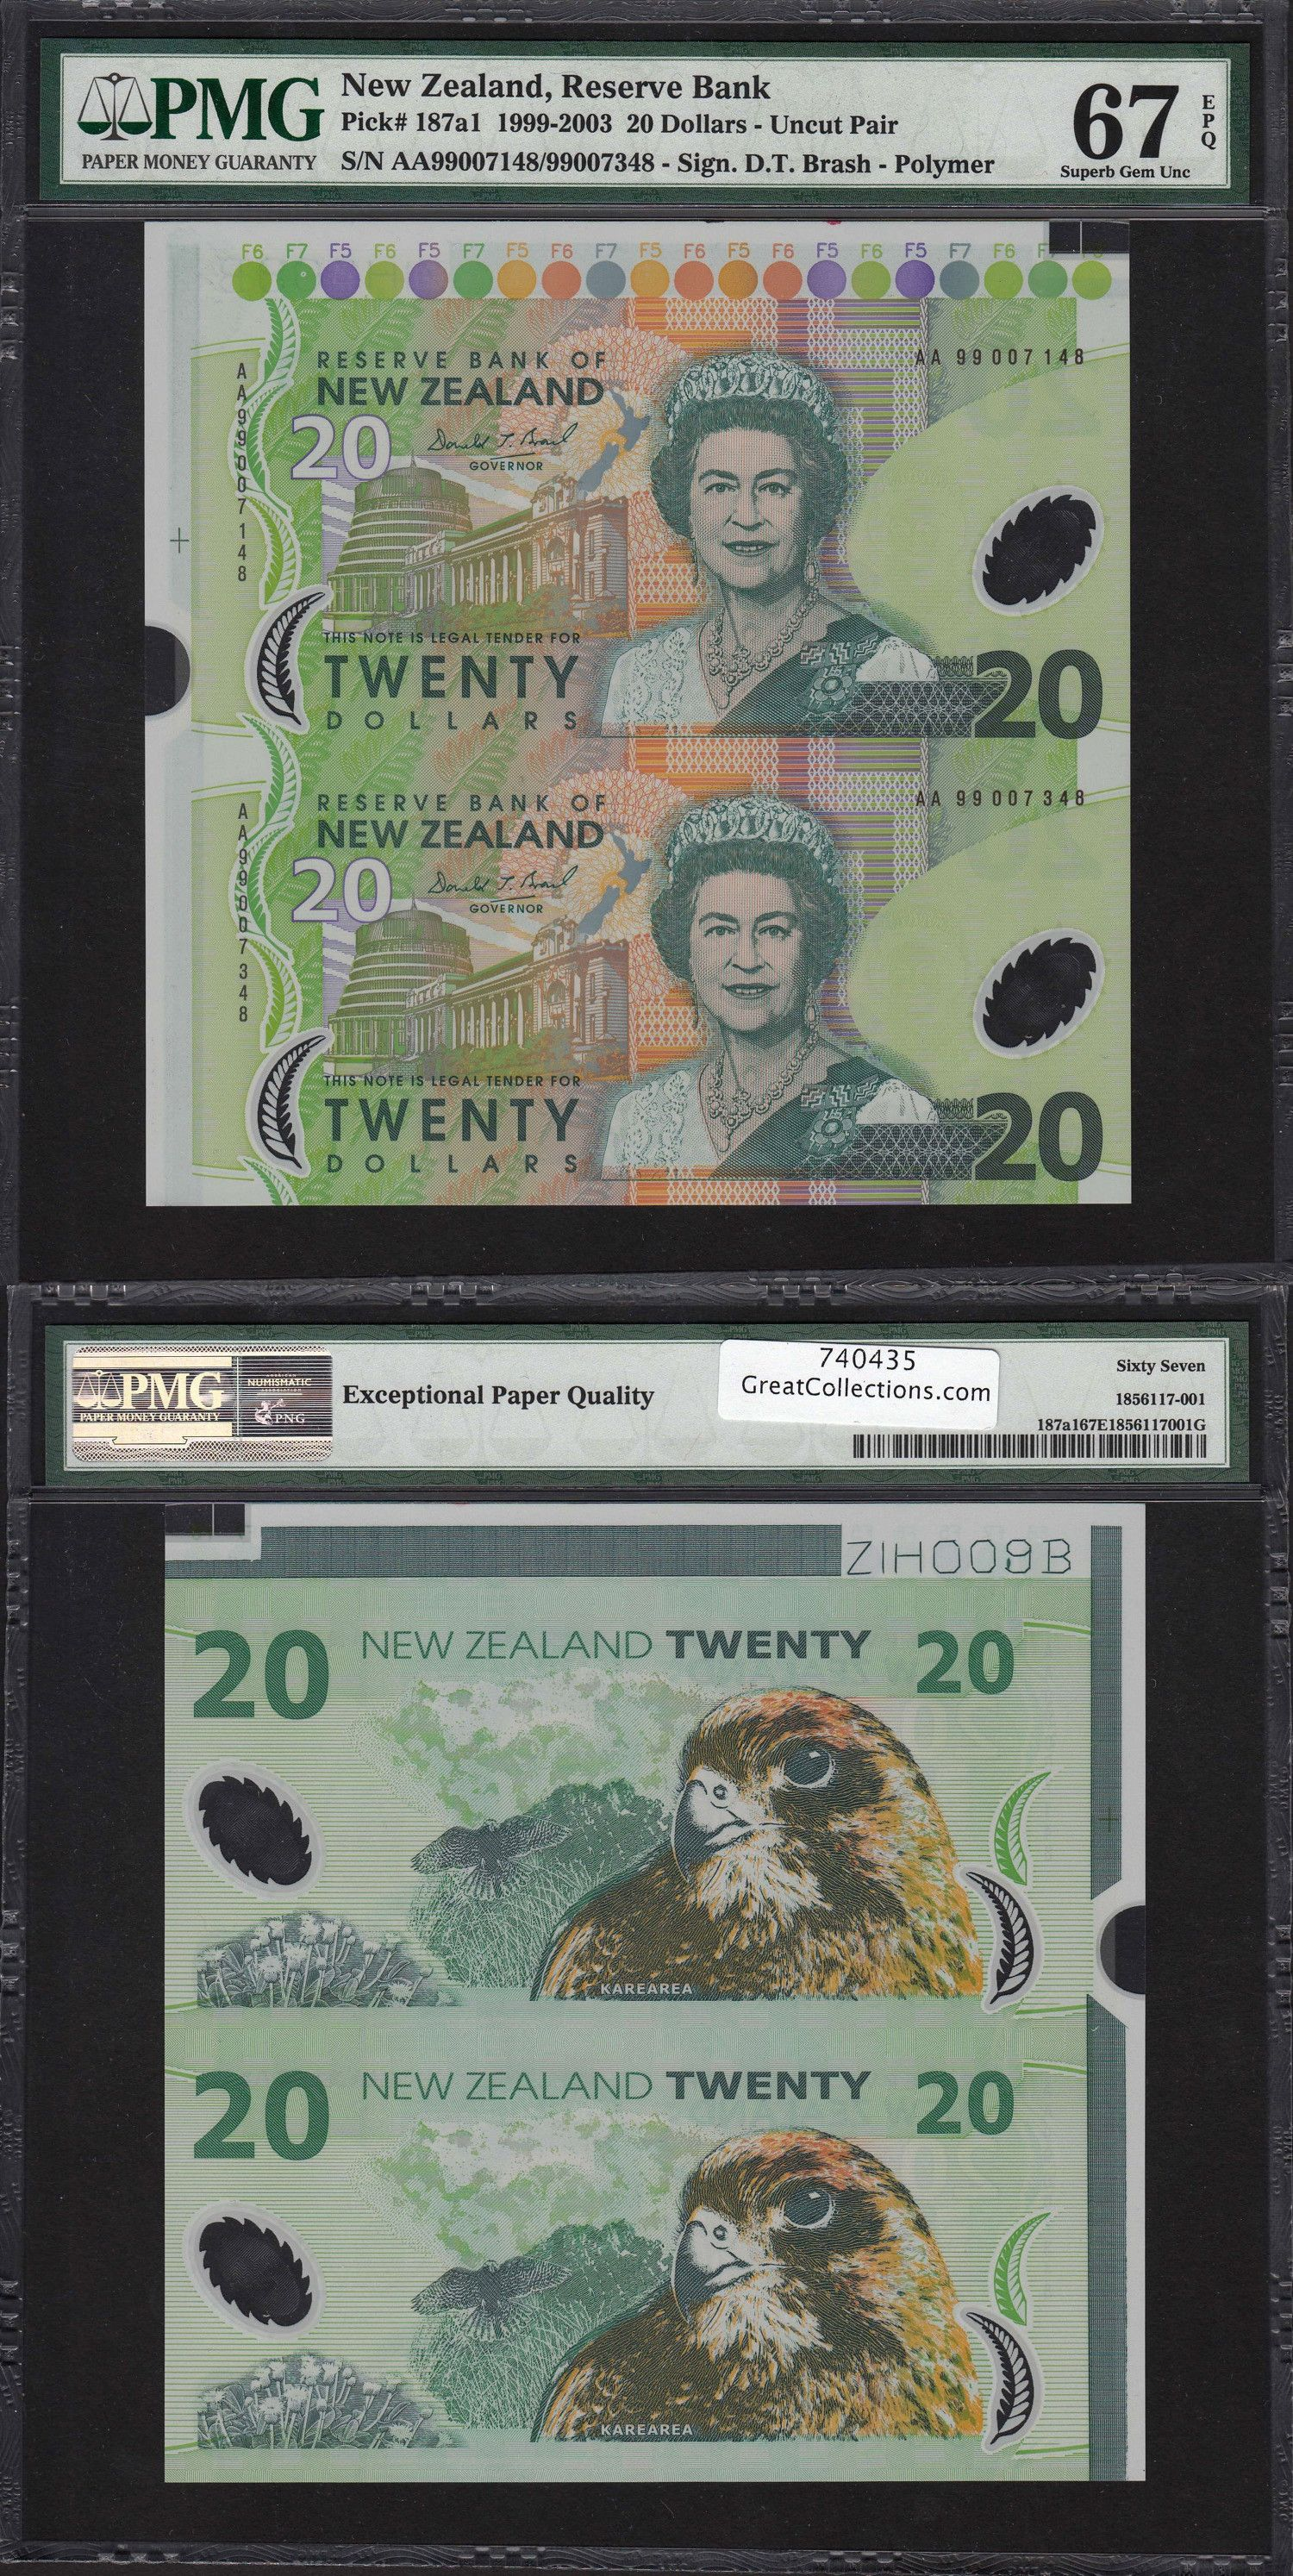 New Zealand 19992003 20 Reserve Bank Note Uncut Pair